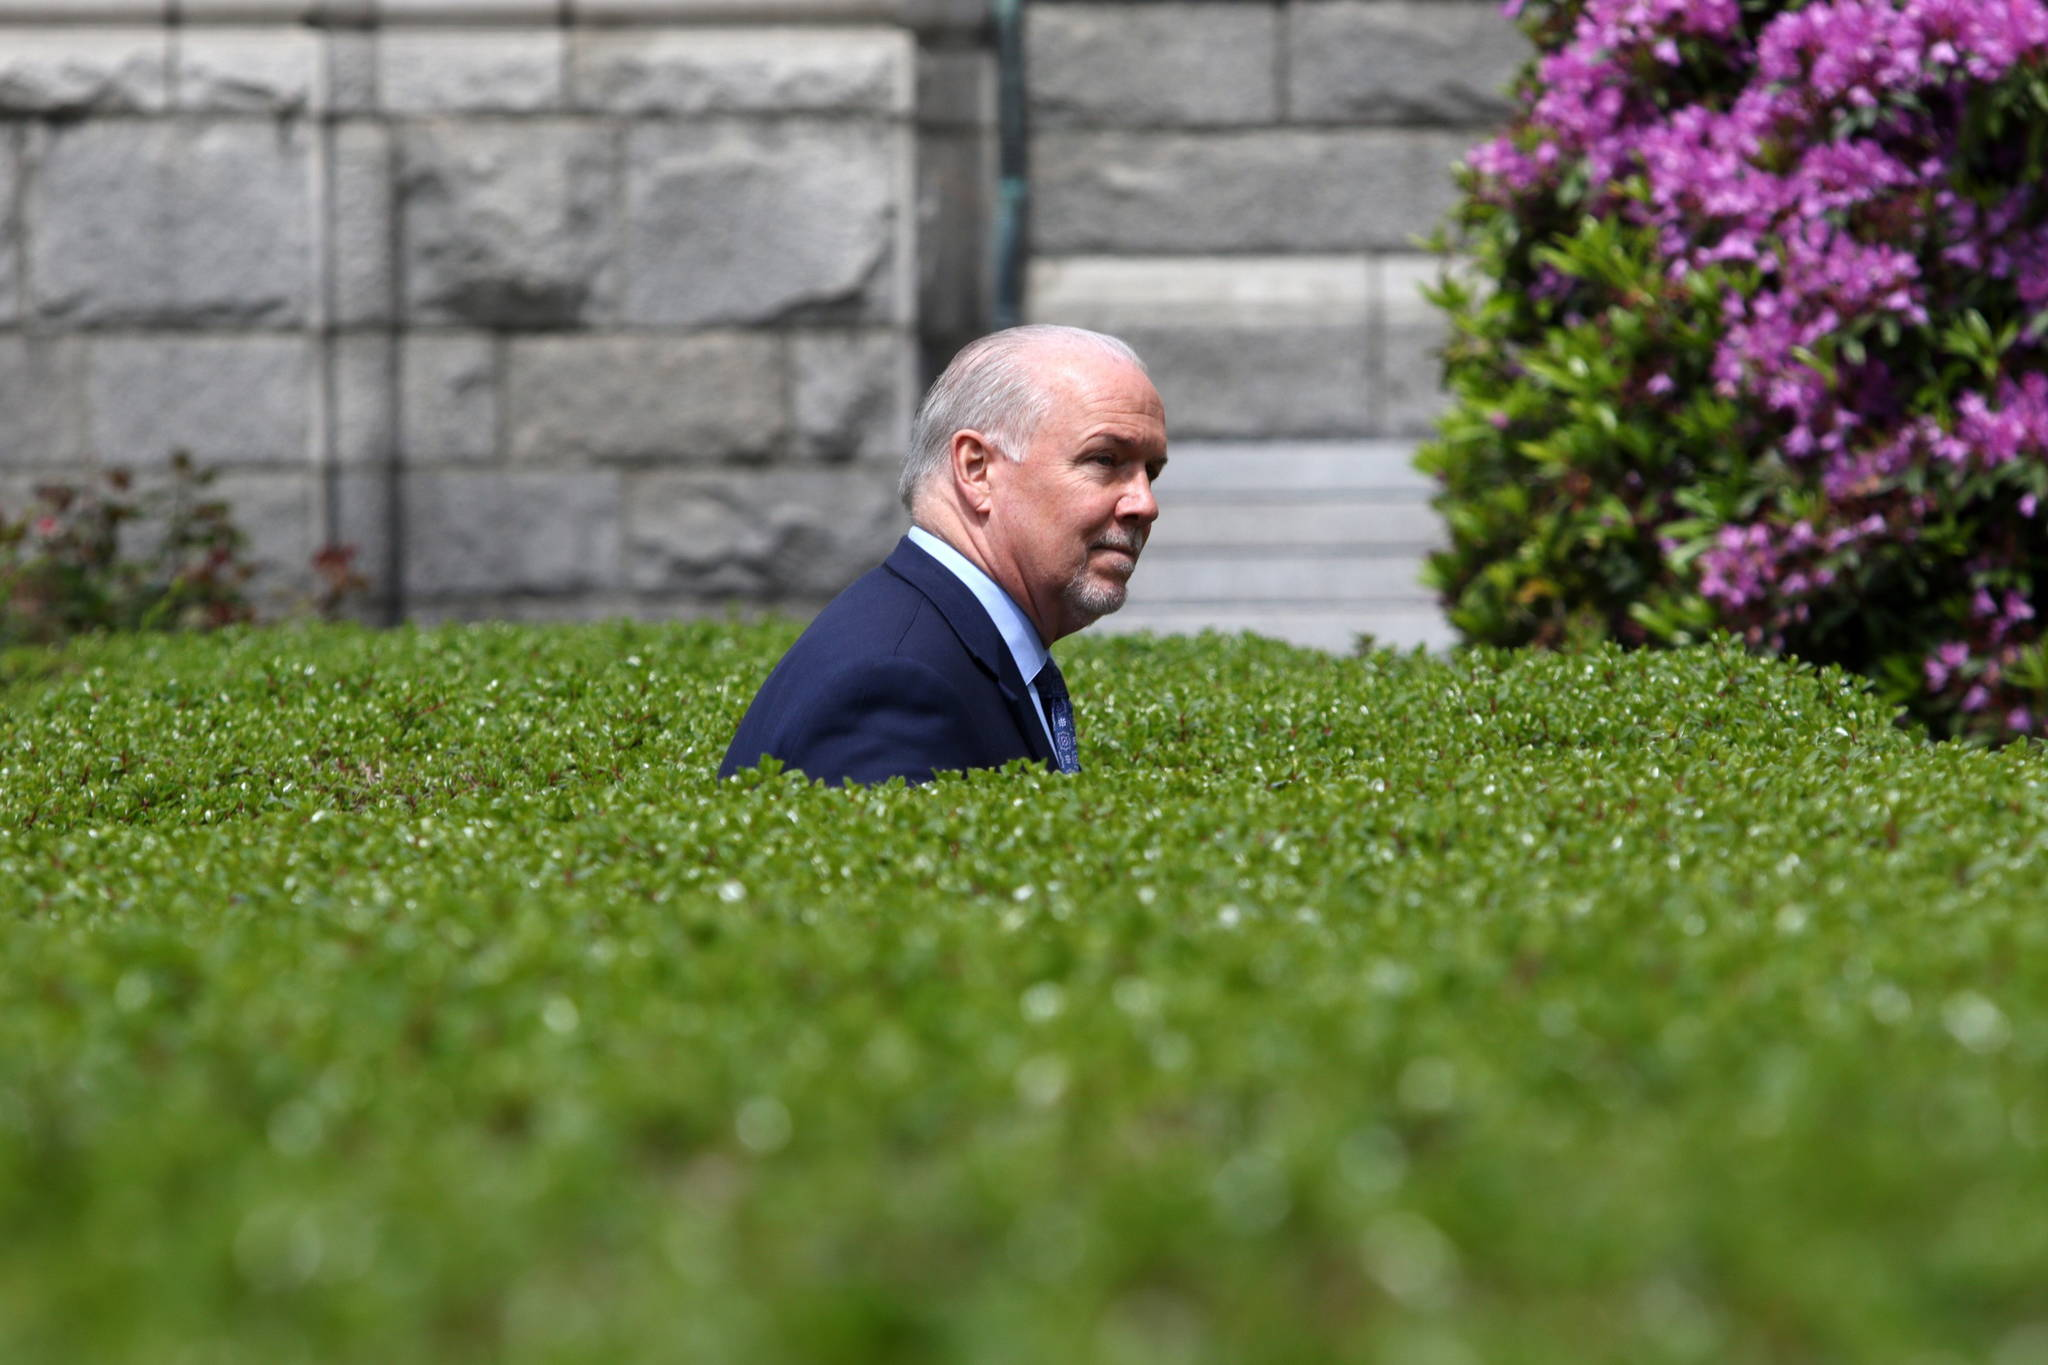 Premier John Horgan leaves the podium following the latest update on the COVID-19 response in the province during a press conference from the rose garden at Legislature in Victoria, B.C., on Wednesday June 3, 2020. THE CANADIAN PRESS/Chad Hipolito